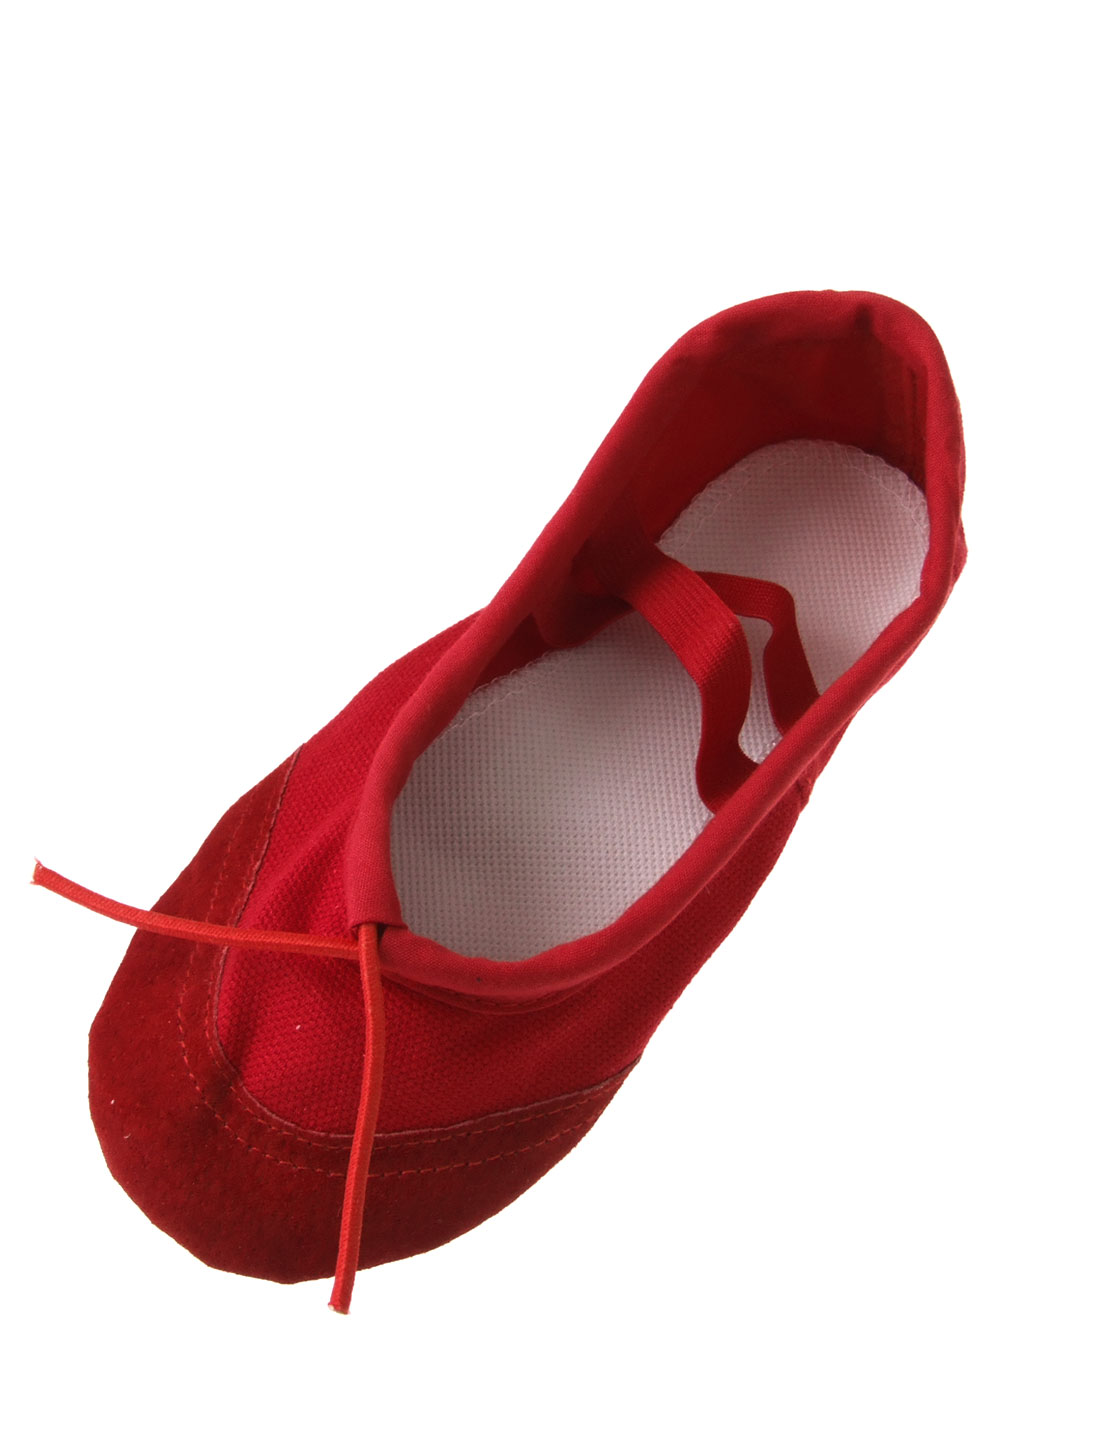 Girls Dance Dancing Ballet Soft Canvas Flat Shoes Red US Size 10